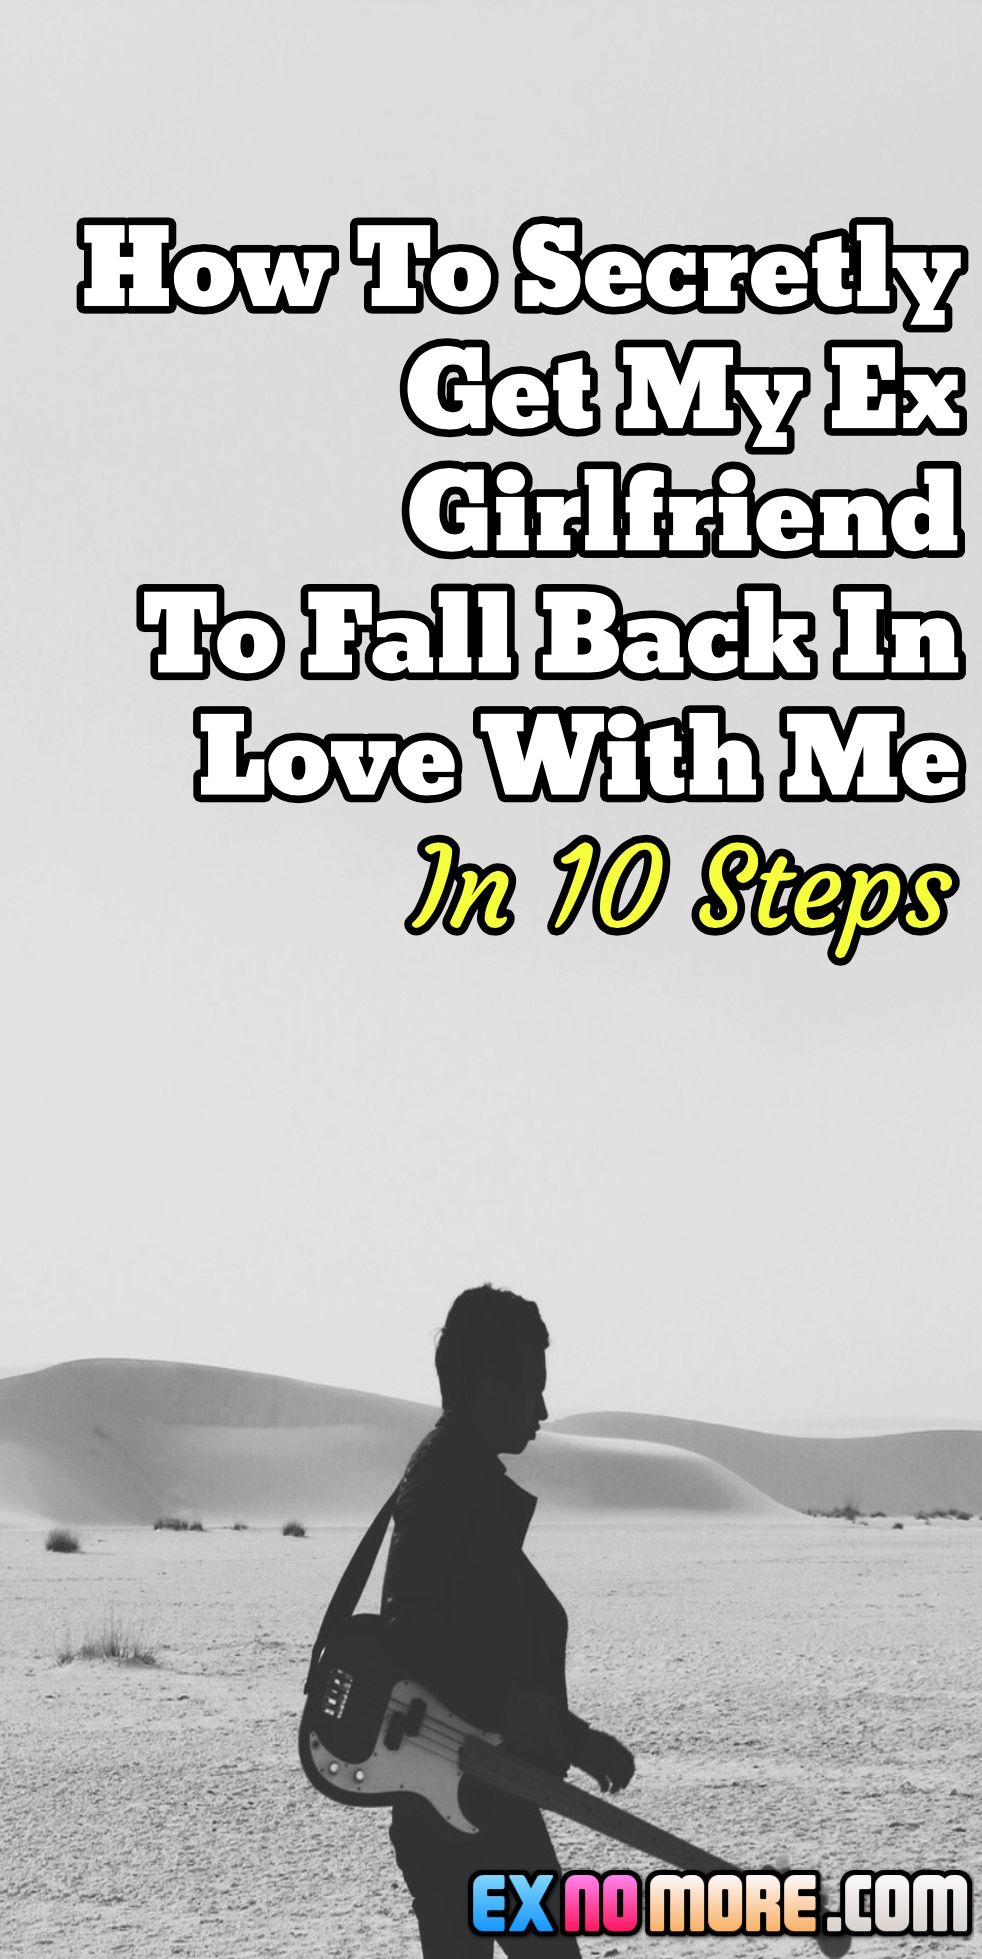 Fall Love Can My Wife Back Me